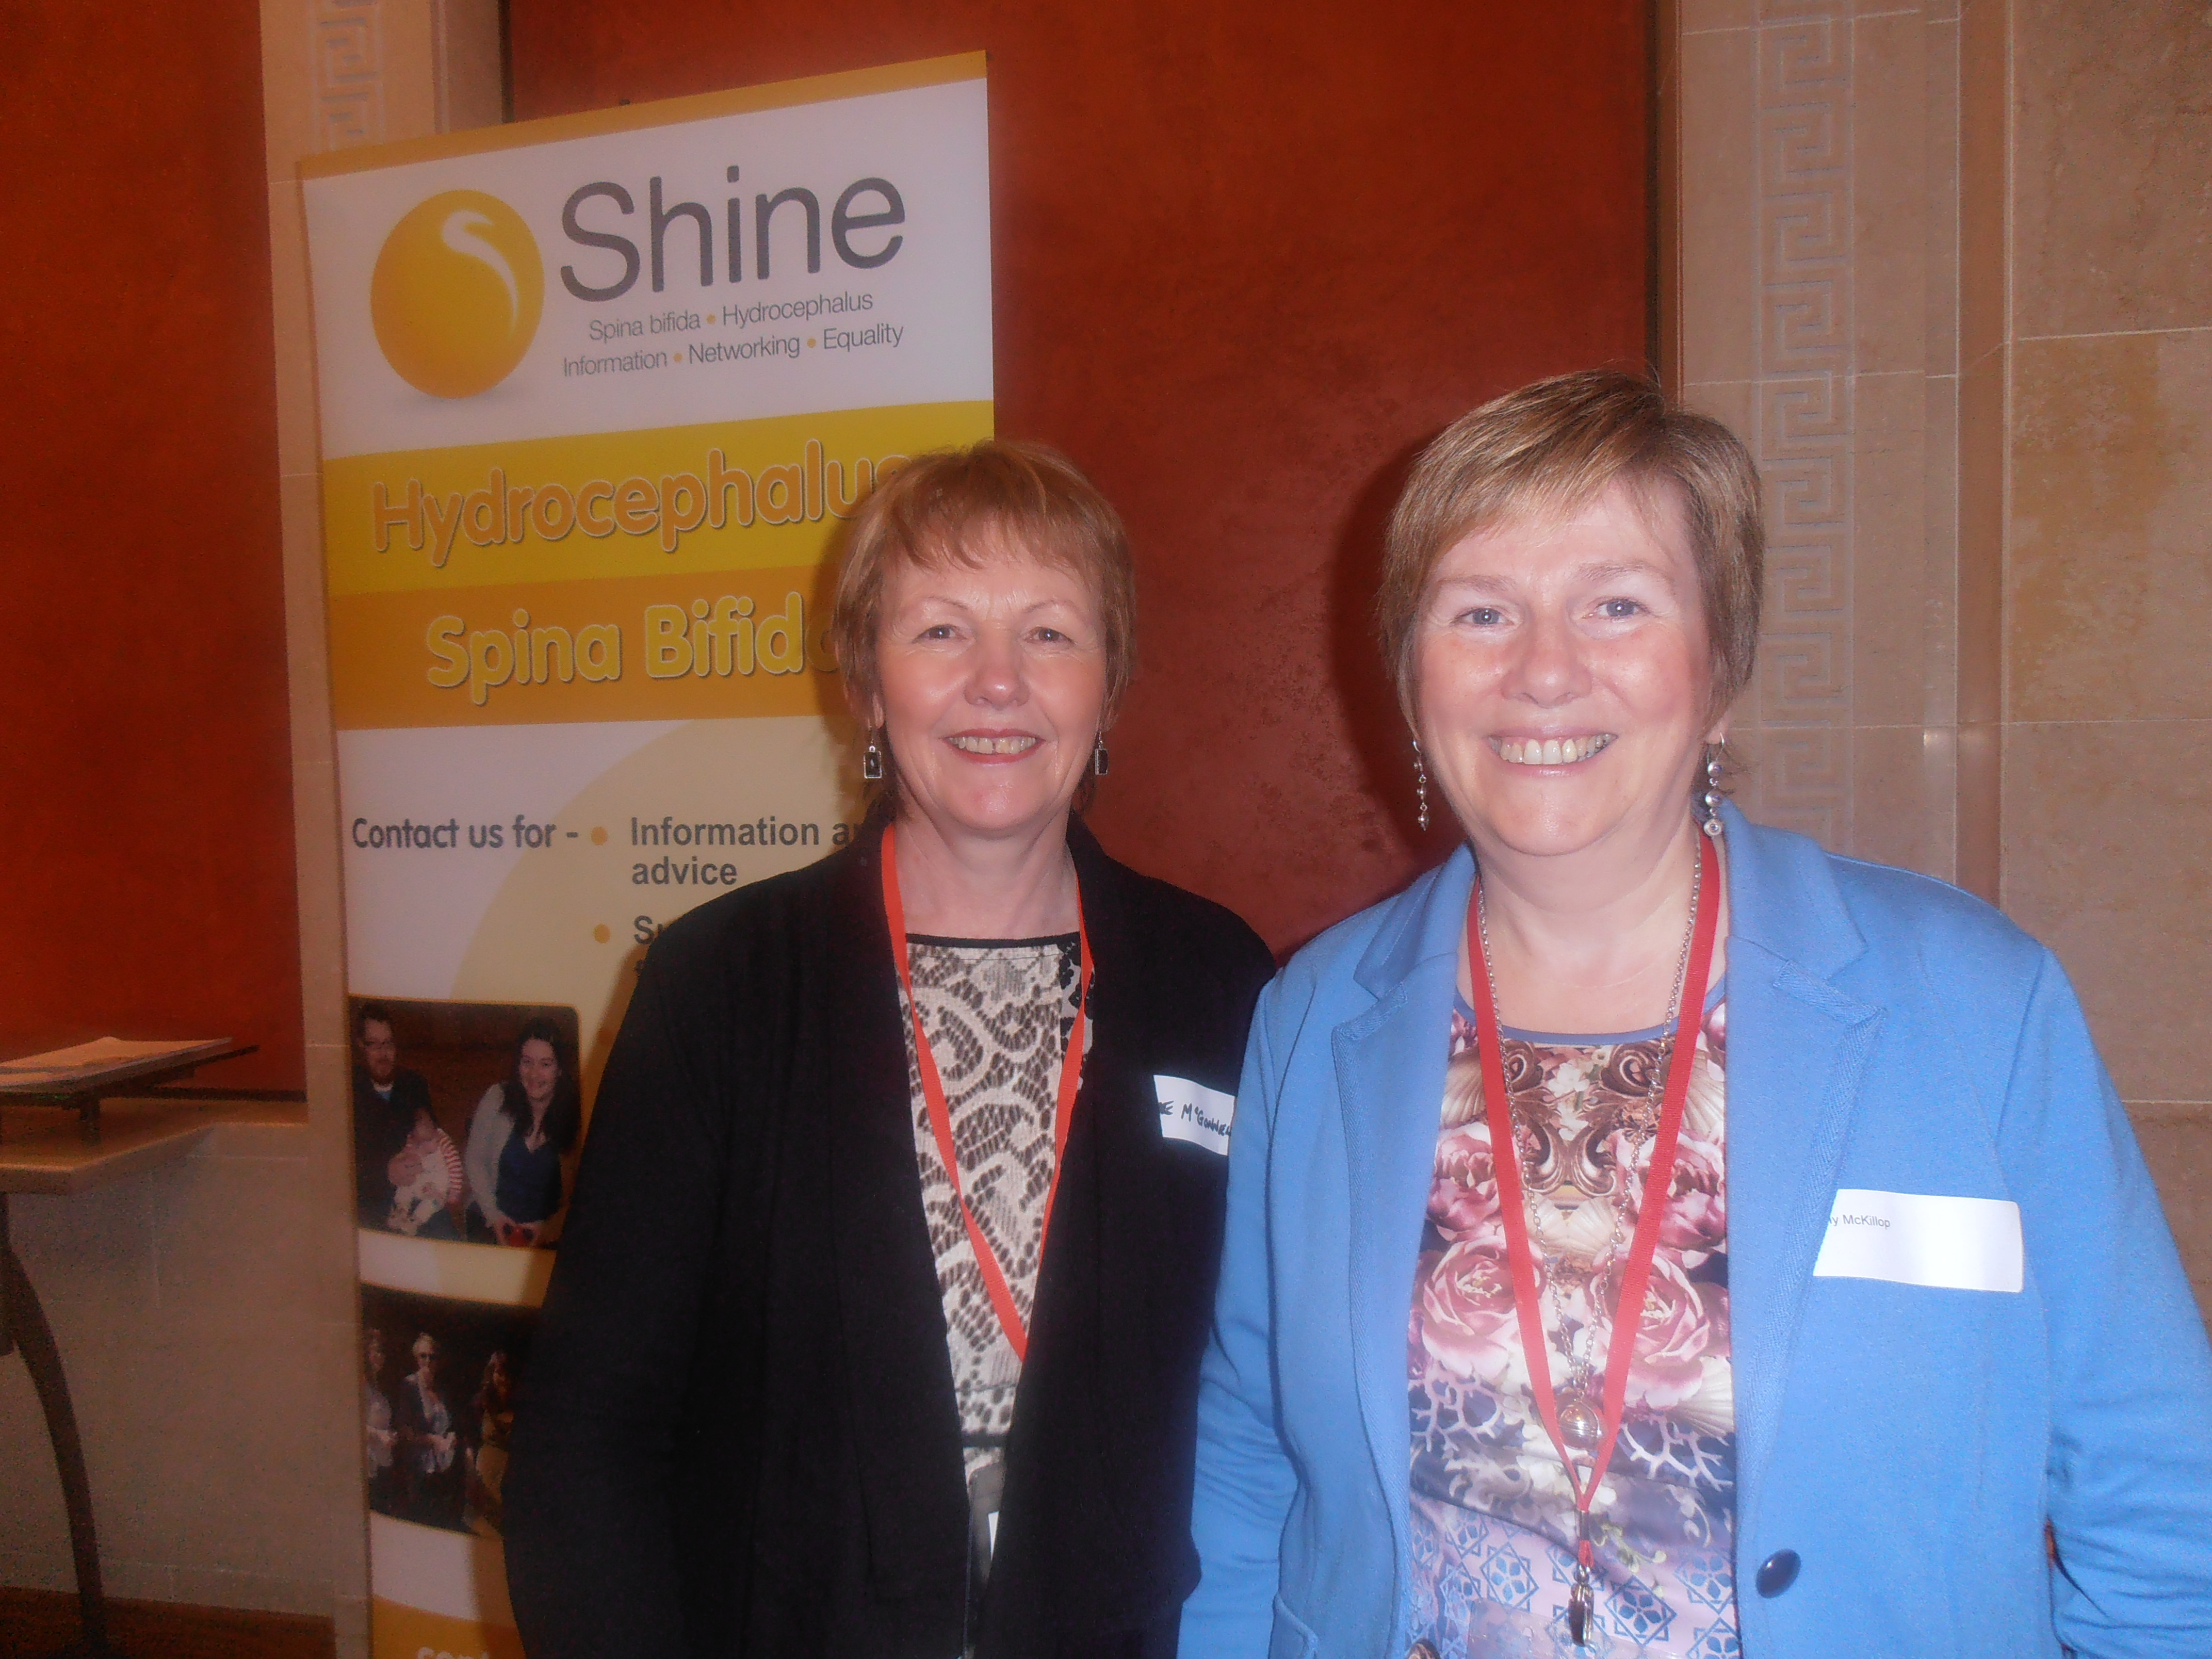 Marie and Cathy from SHINE